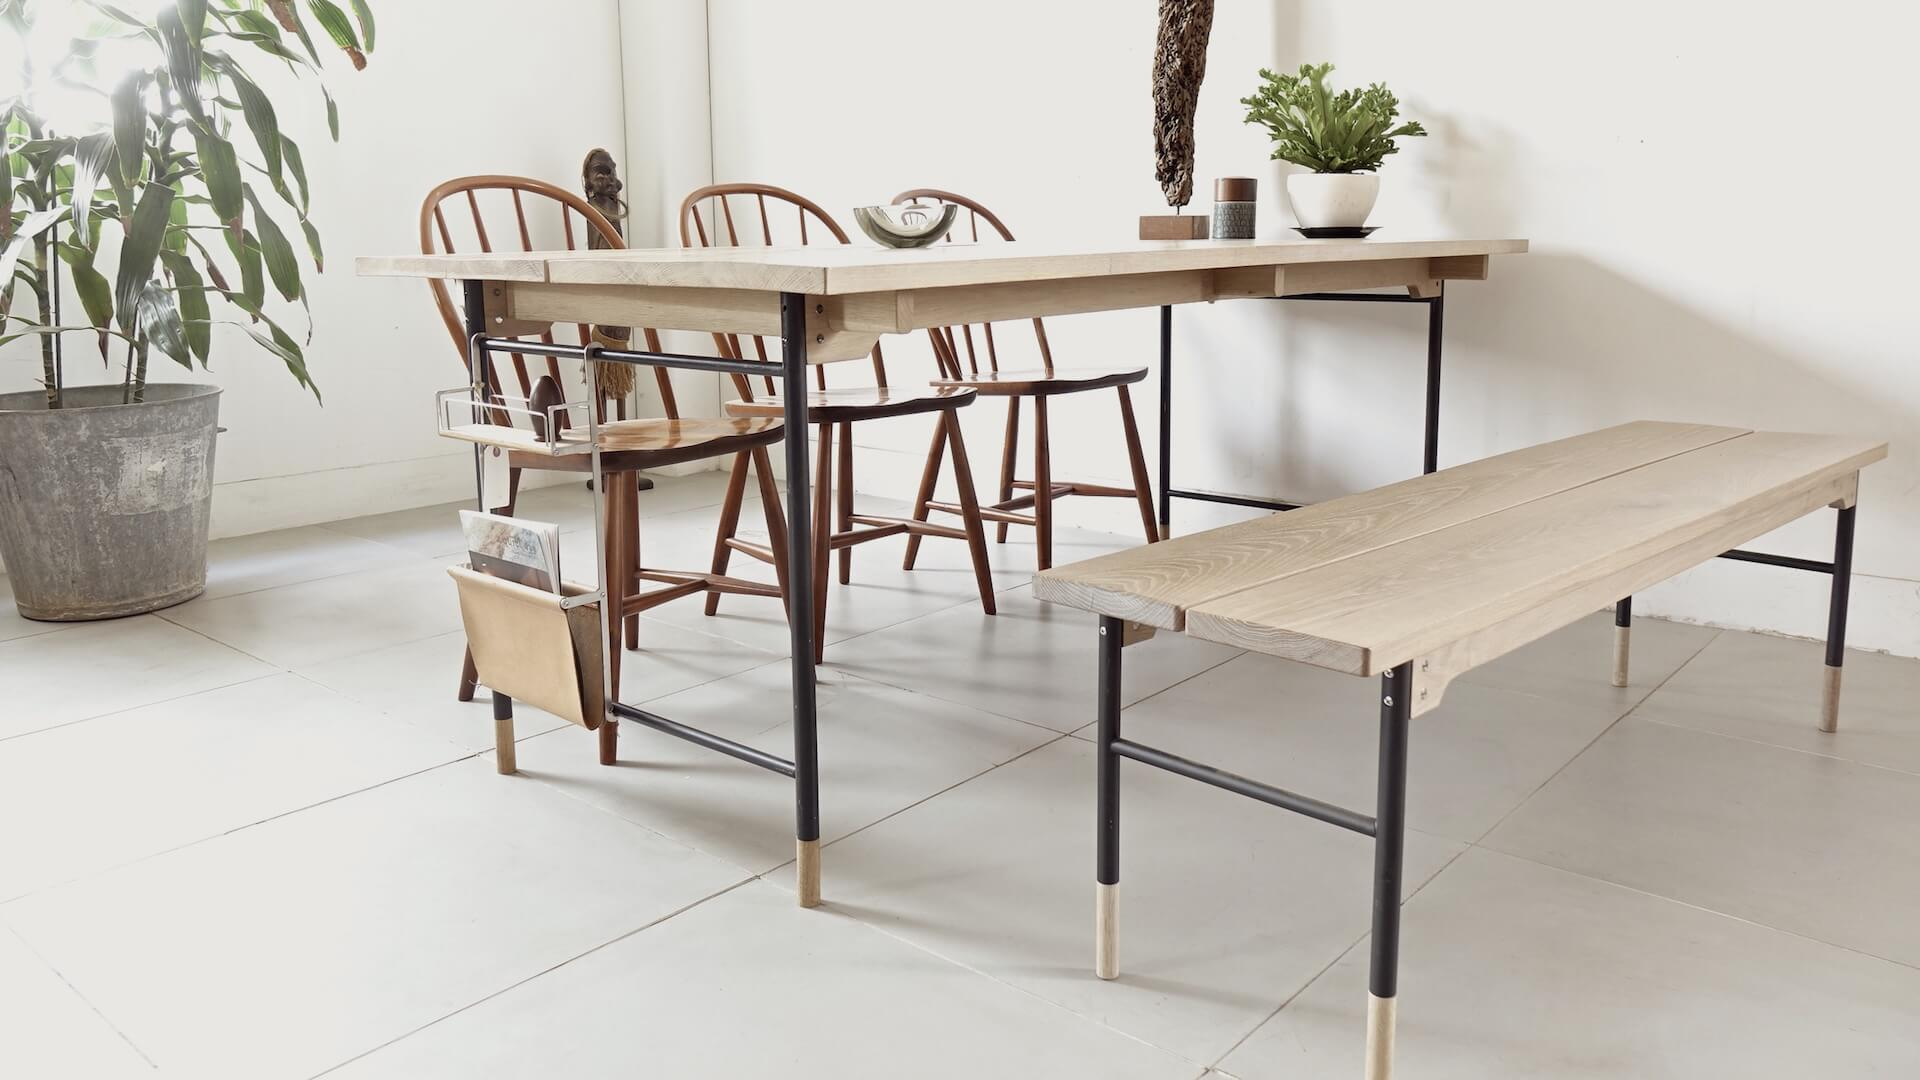 Dining table with Bench by Veronica